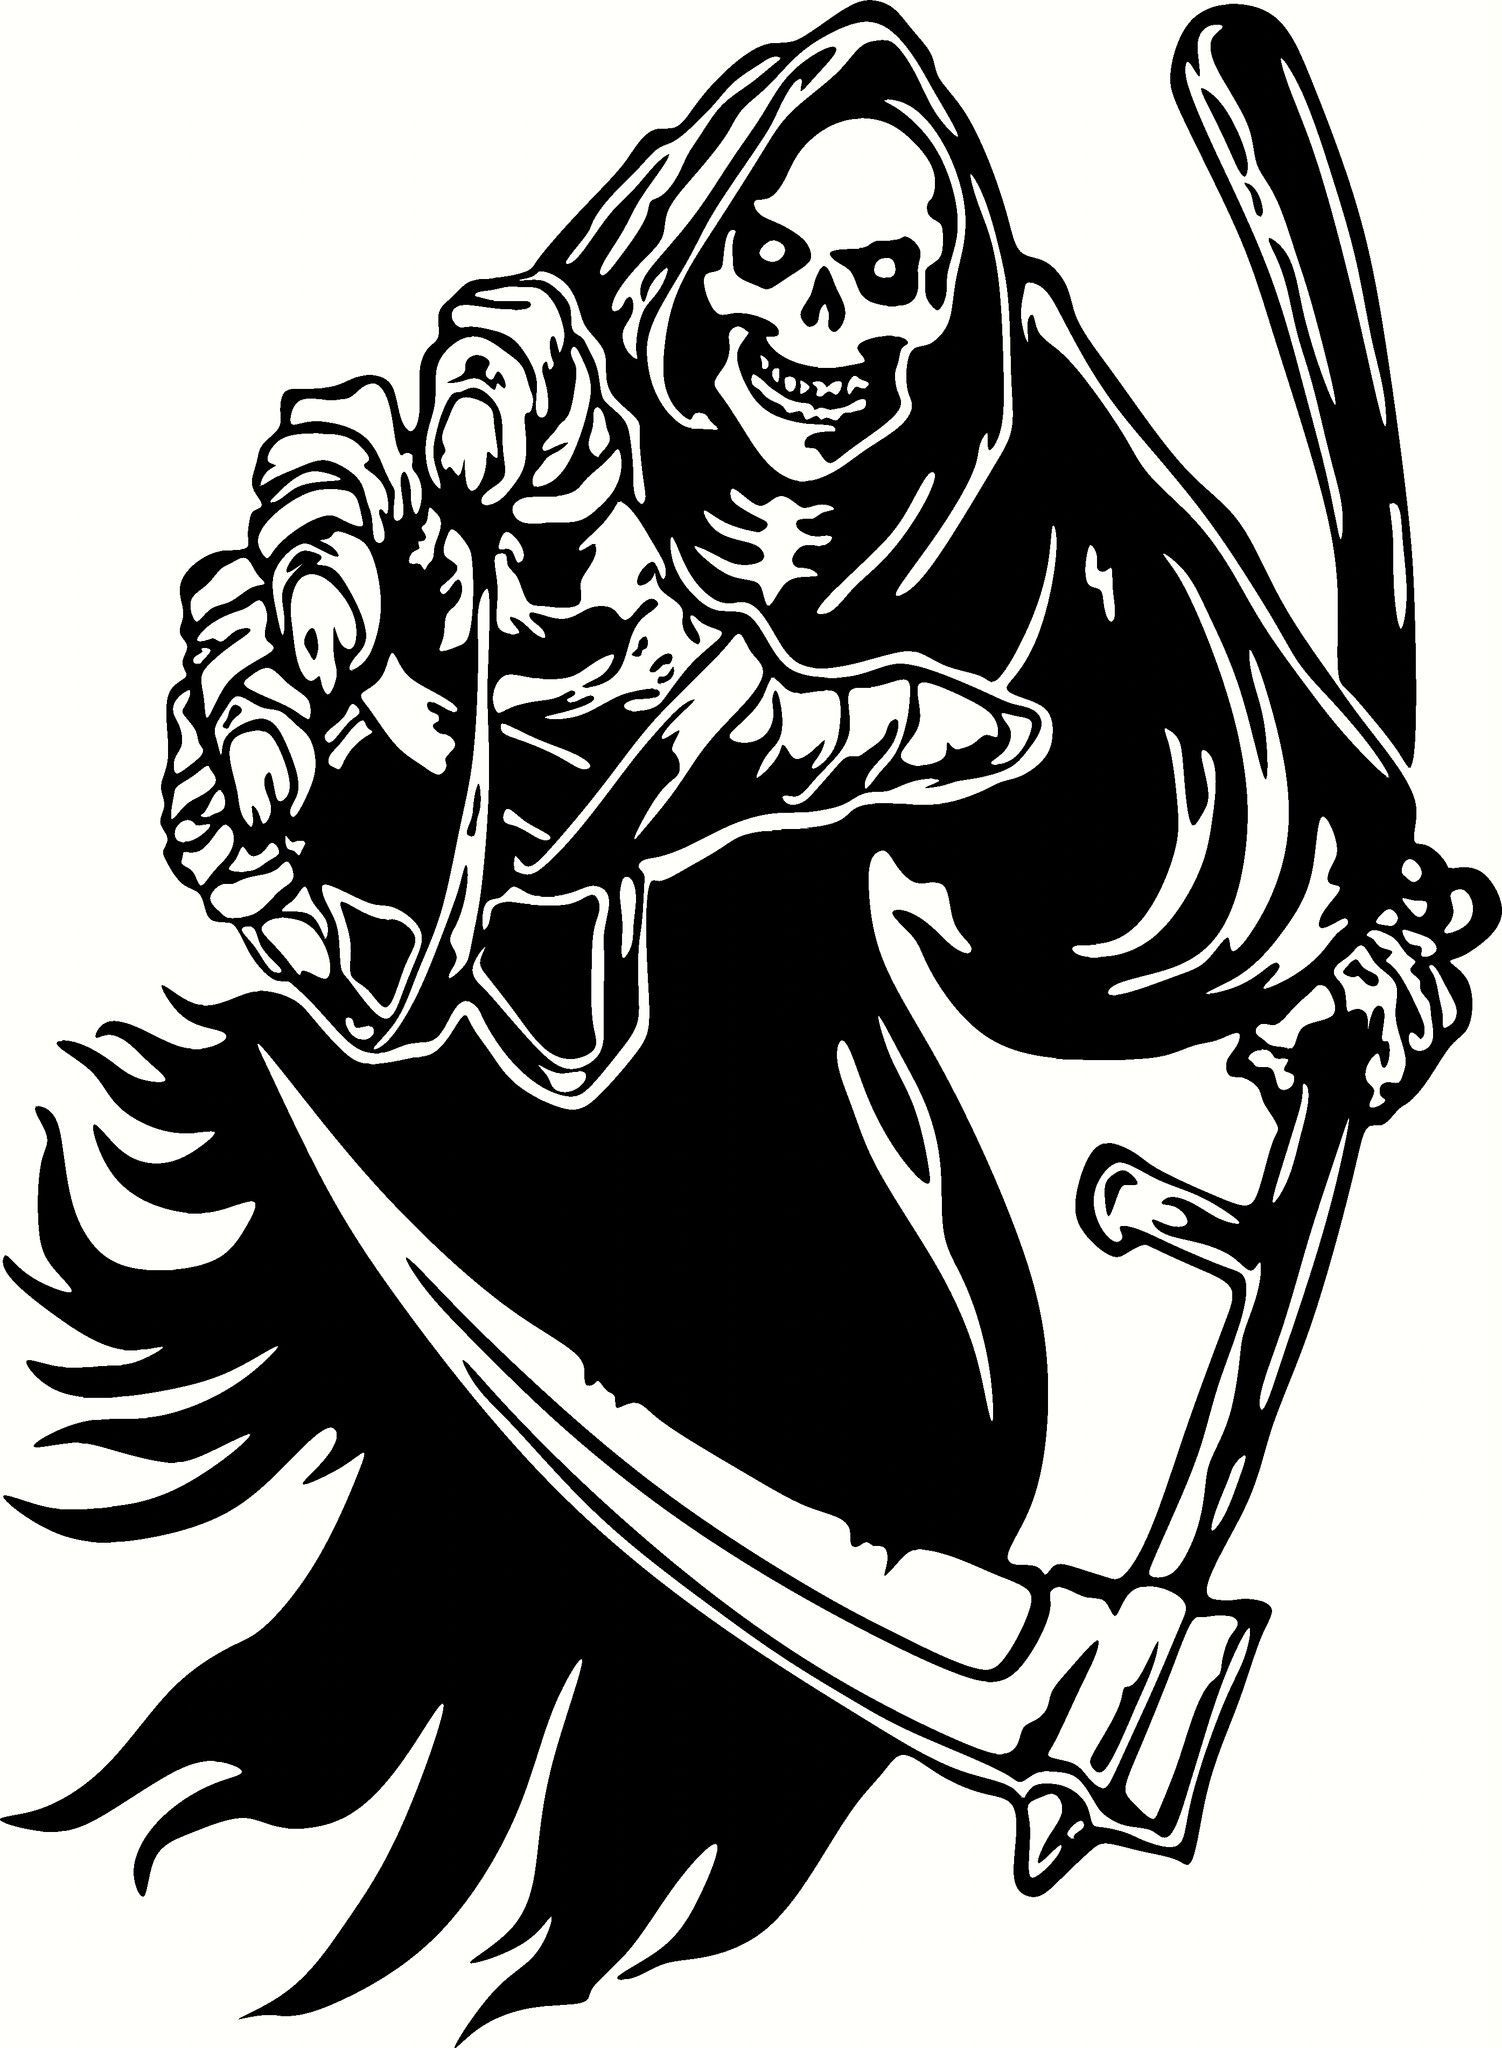 Grim Reaper Reaching Vinyl Cut Out Decal Sticker In Your